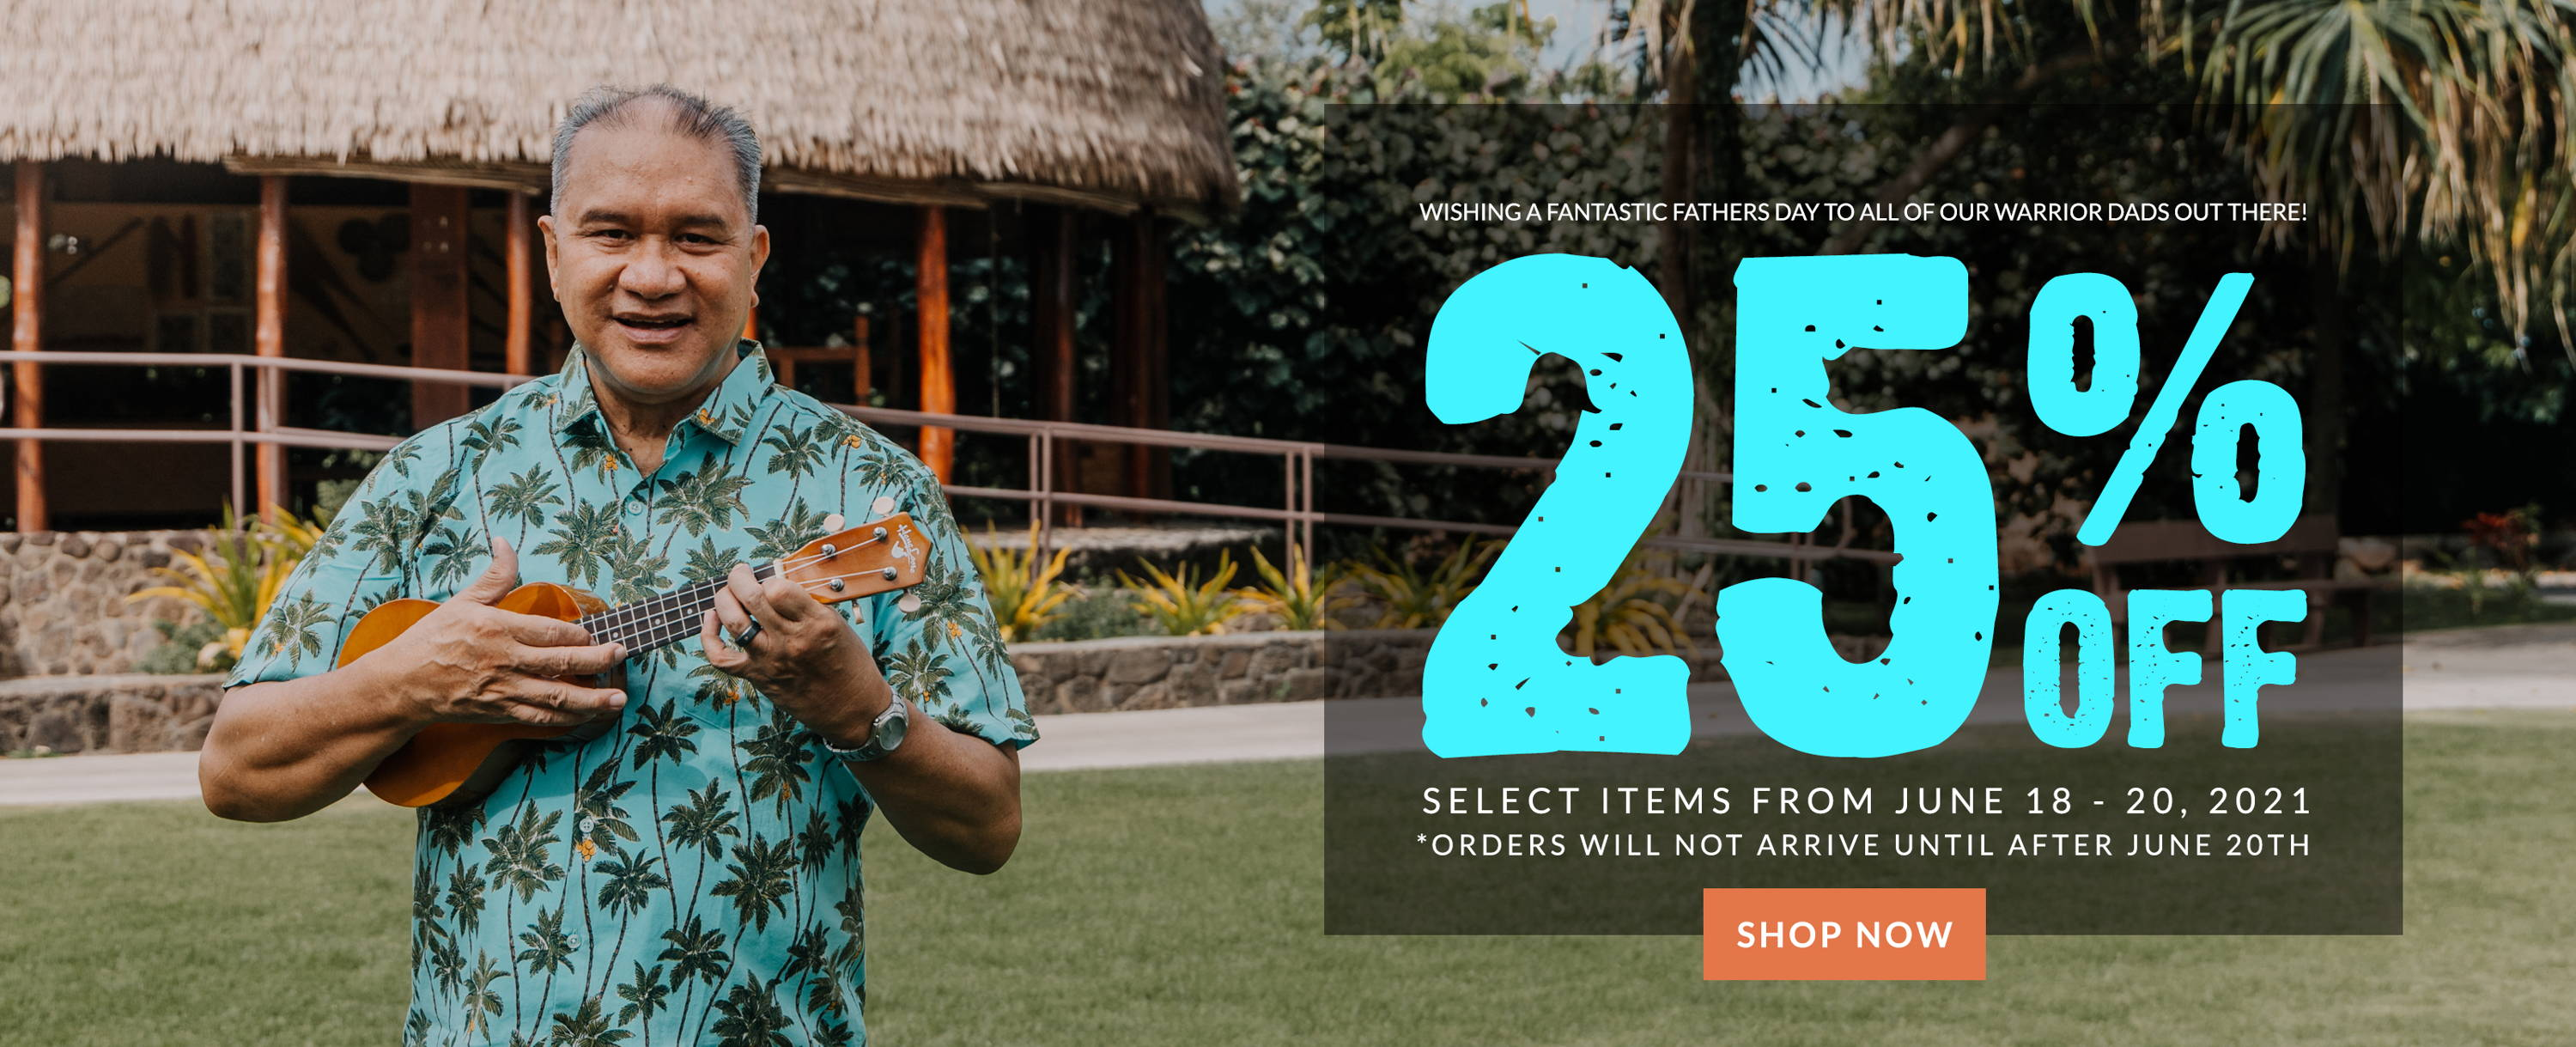 FATHERS DAY FLASH SALE 2021 25% OFF